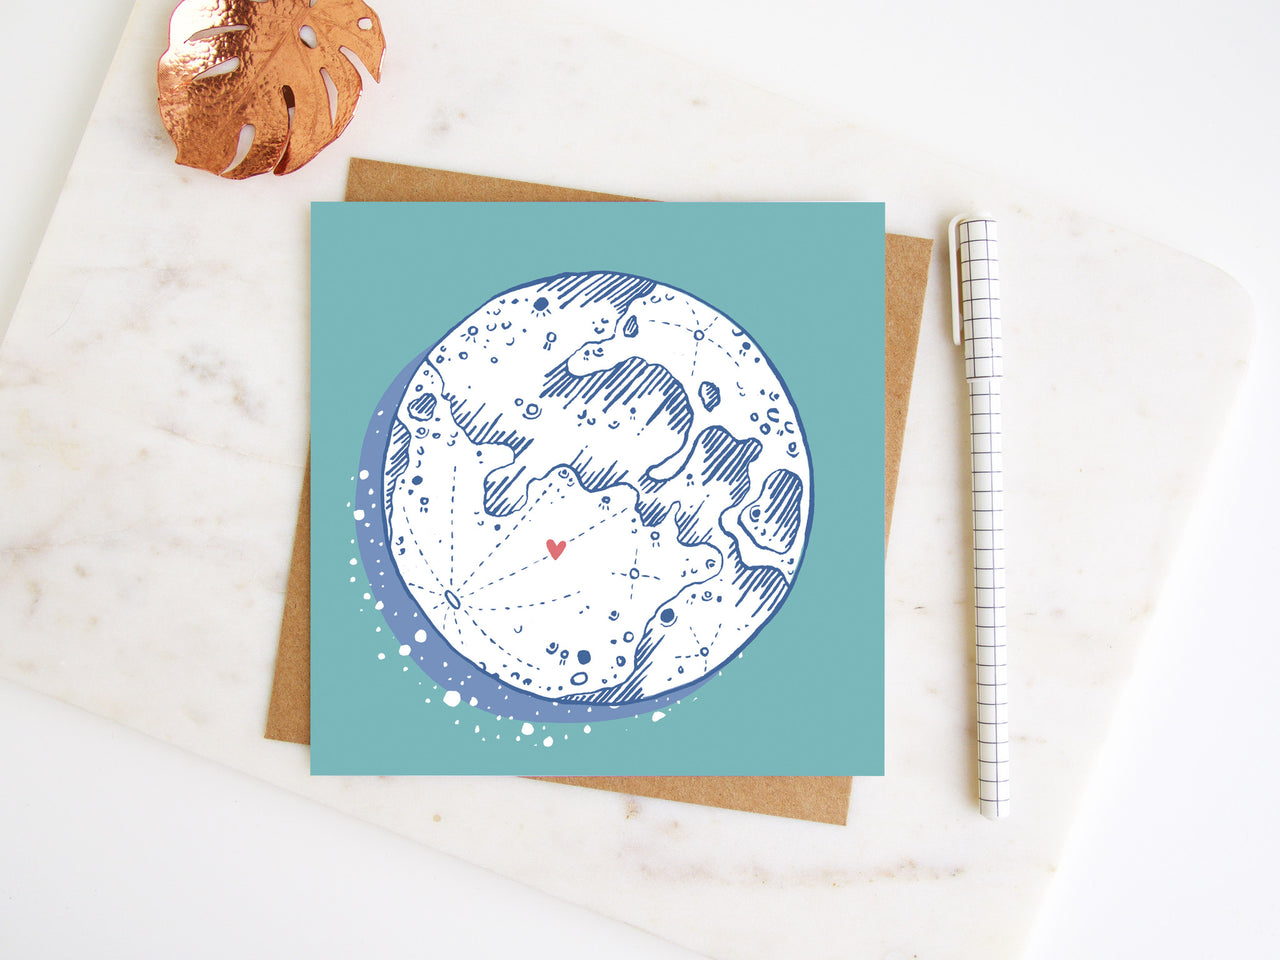 Minty Moon Greetings Card